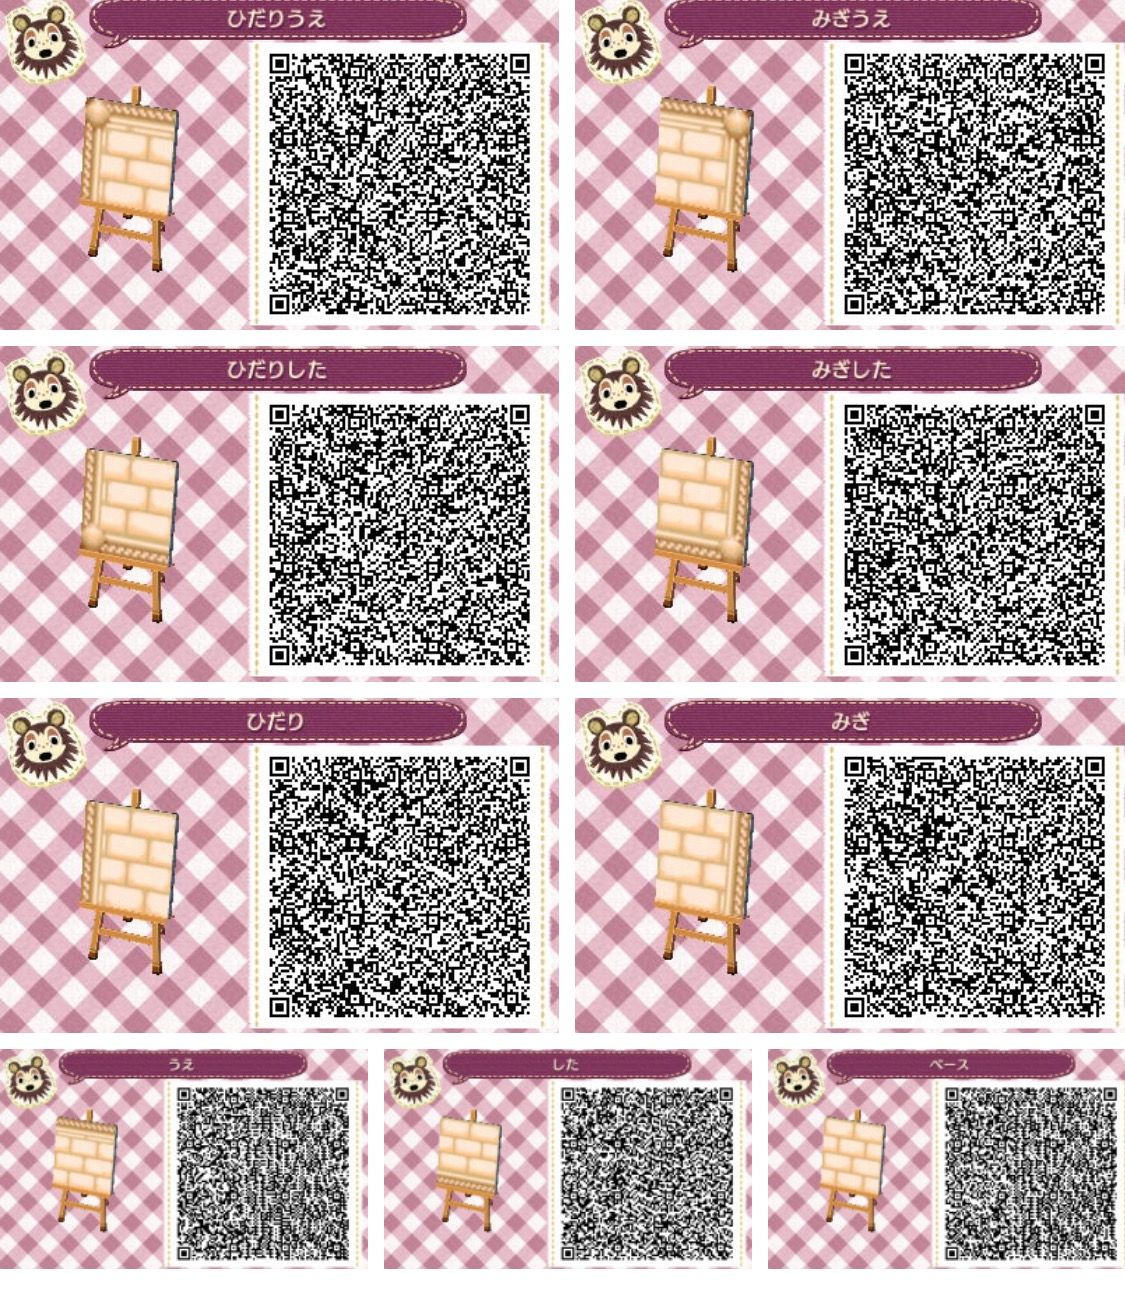 Pin by nancy everly on animal crossing new leaf for Boden qr codes animal crossing new leaf